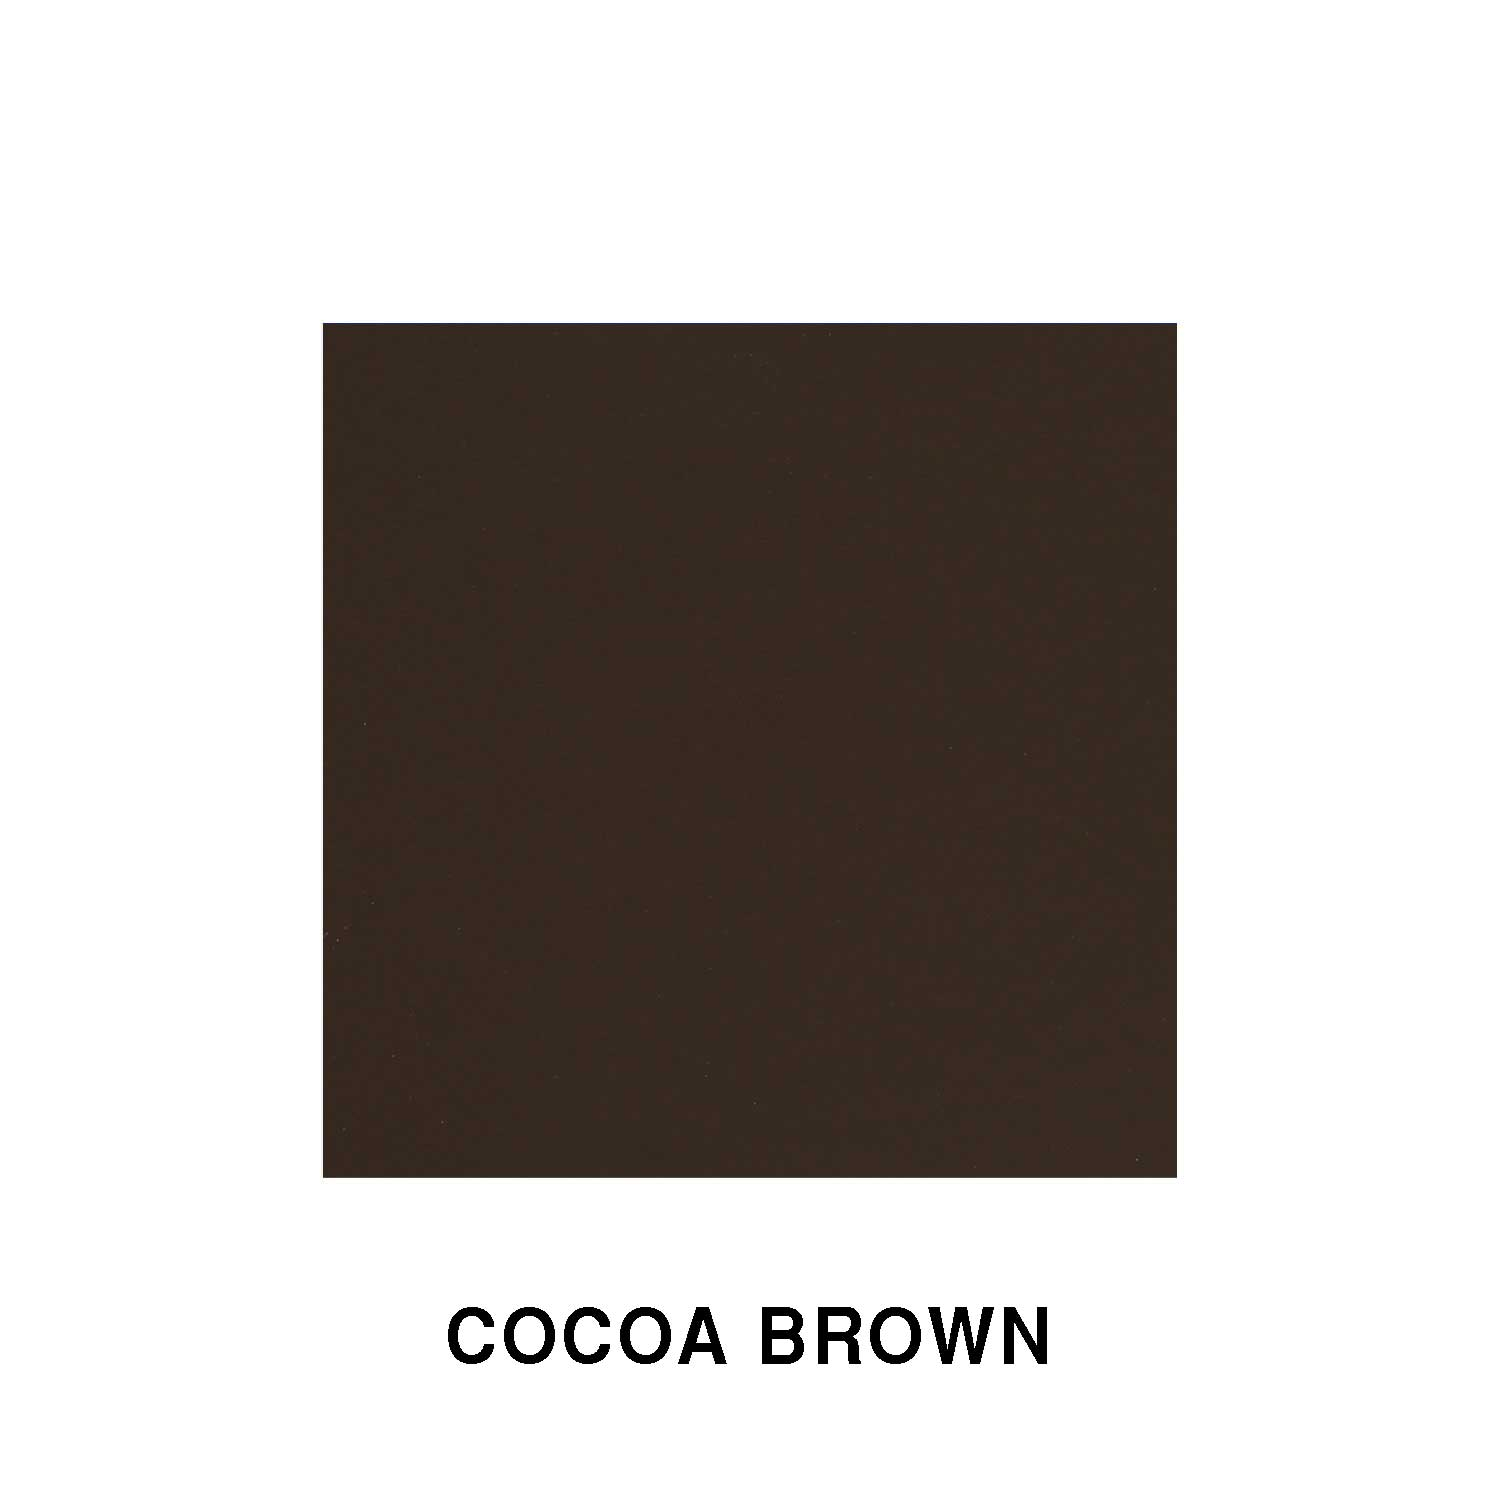 Cocoa Brown Fiberglass Finish